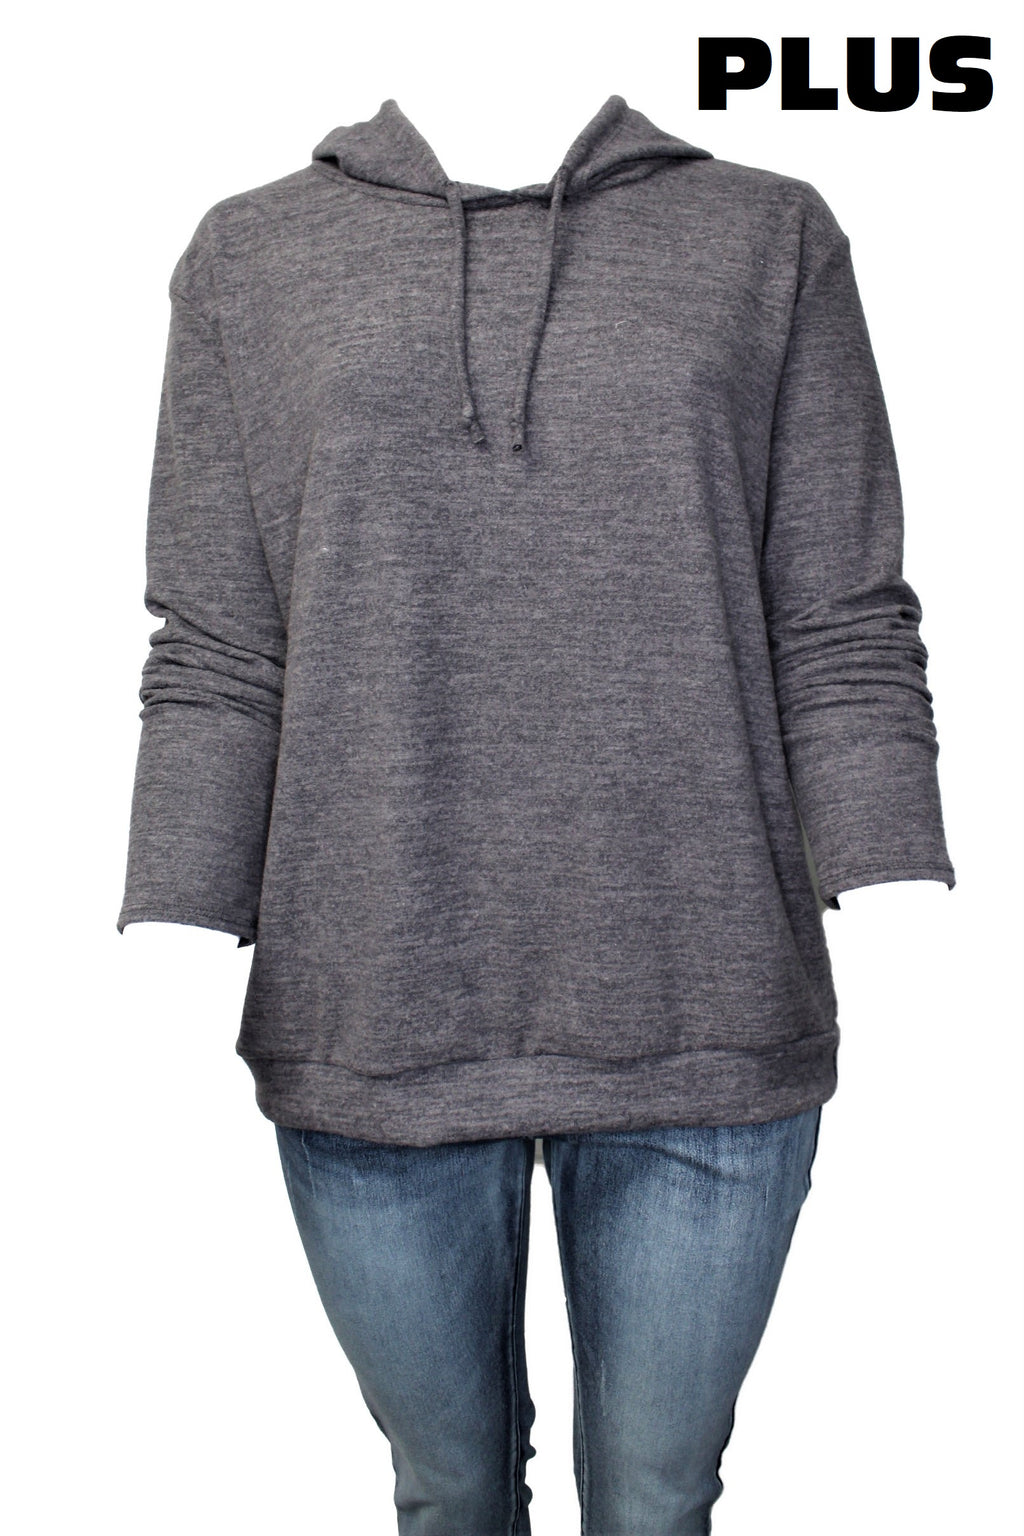 Women's Plus Size Long Sleeve Comfy Hoodie